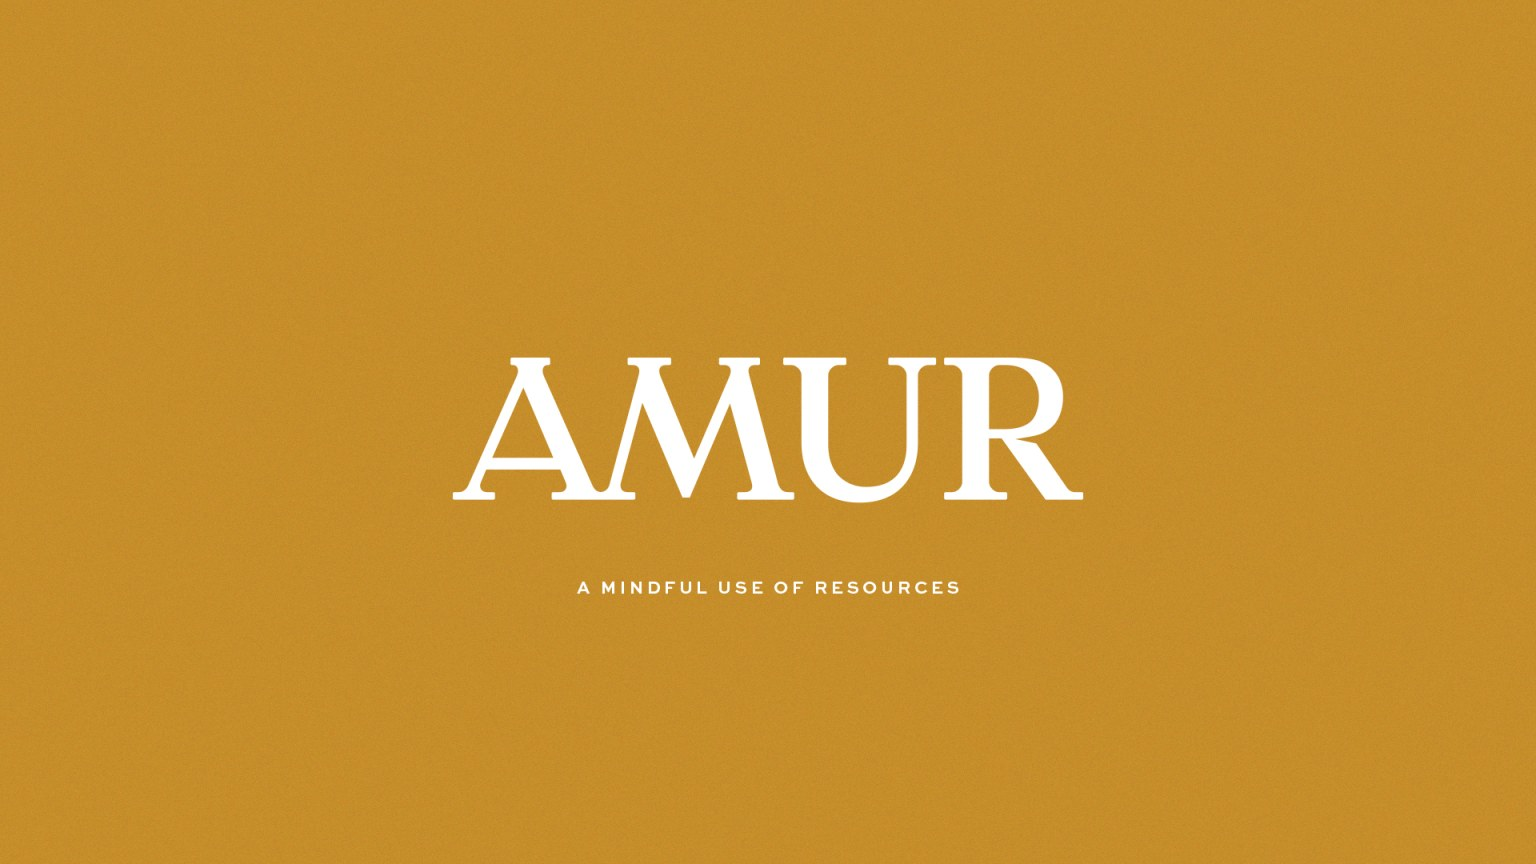 Amur – A Mindful Use of Resources